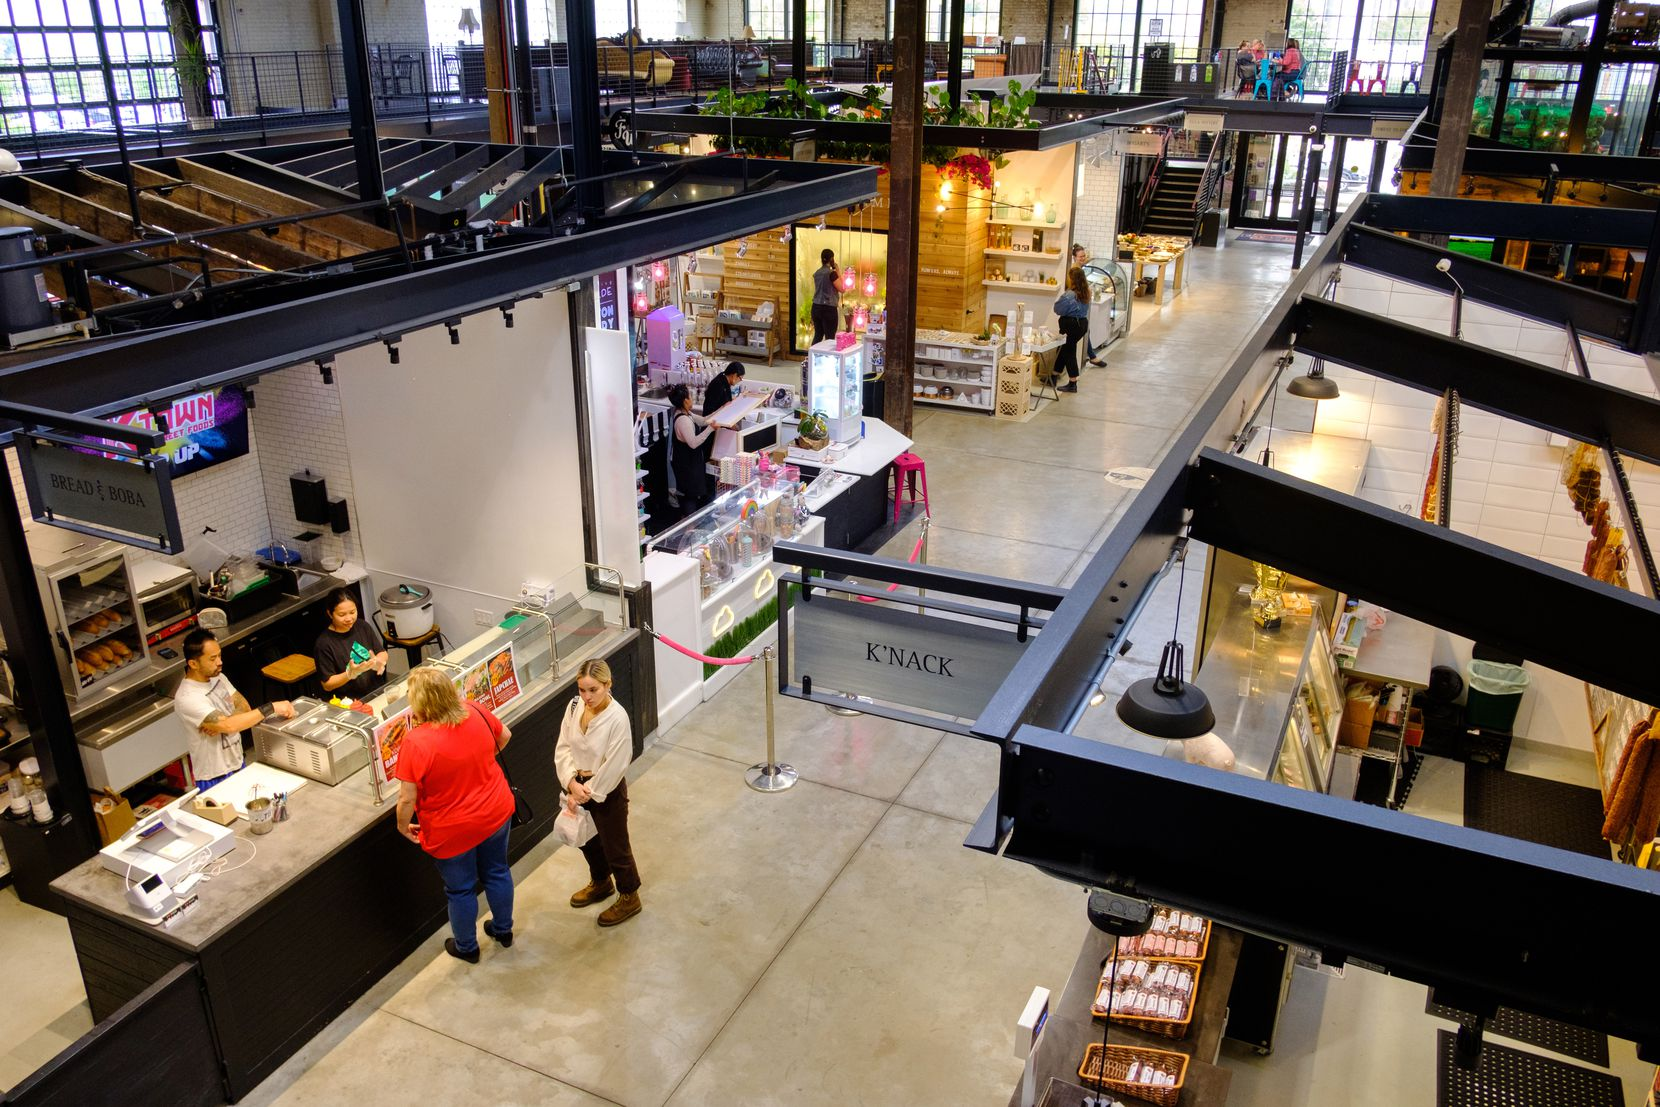 Keg and Case West 7th Market is a food and retail hall that opened last year in St. Paul.